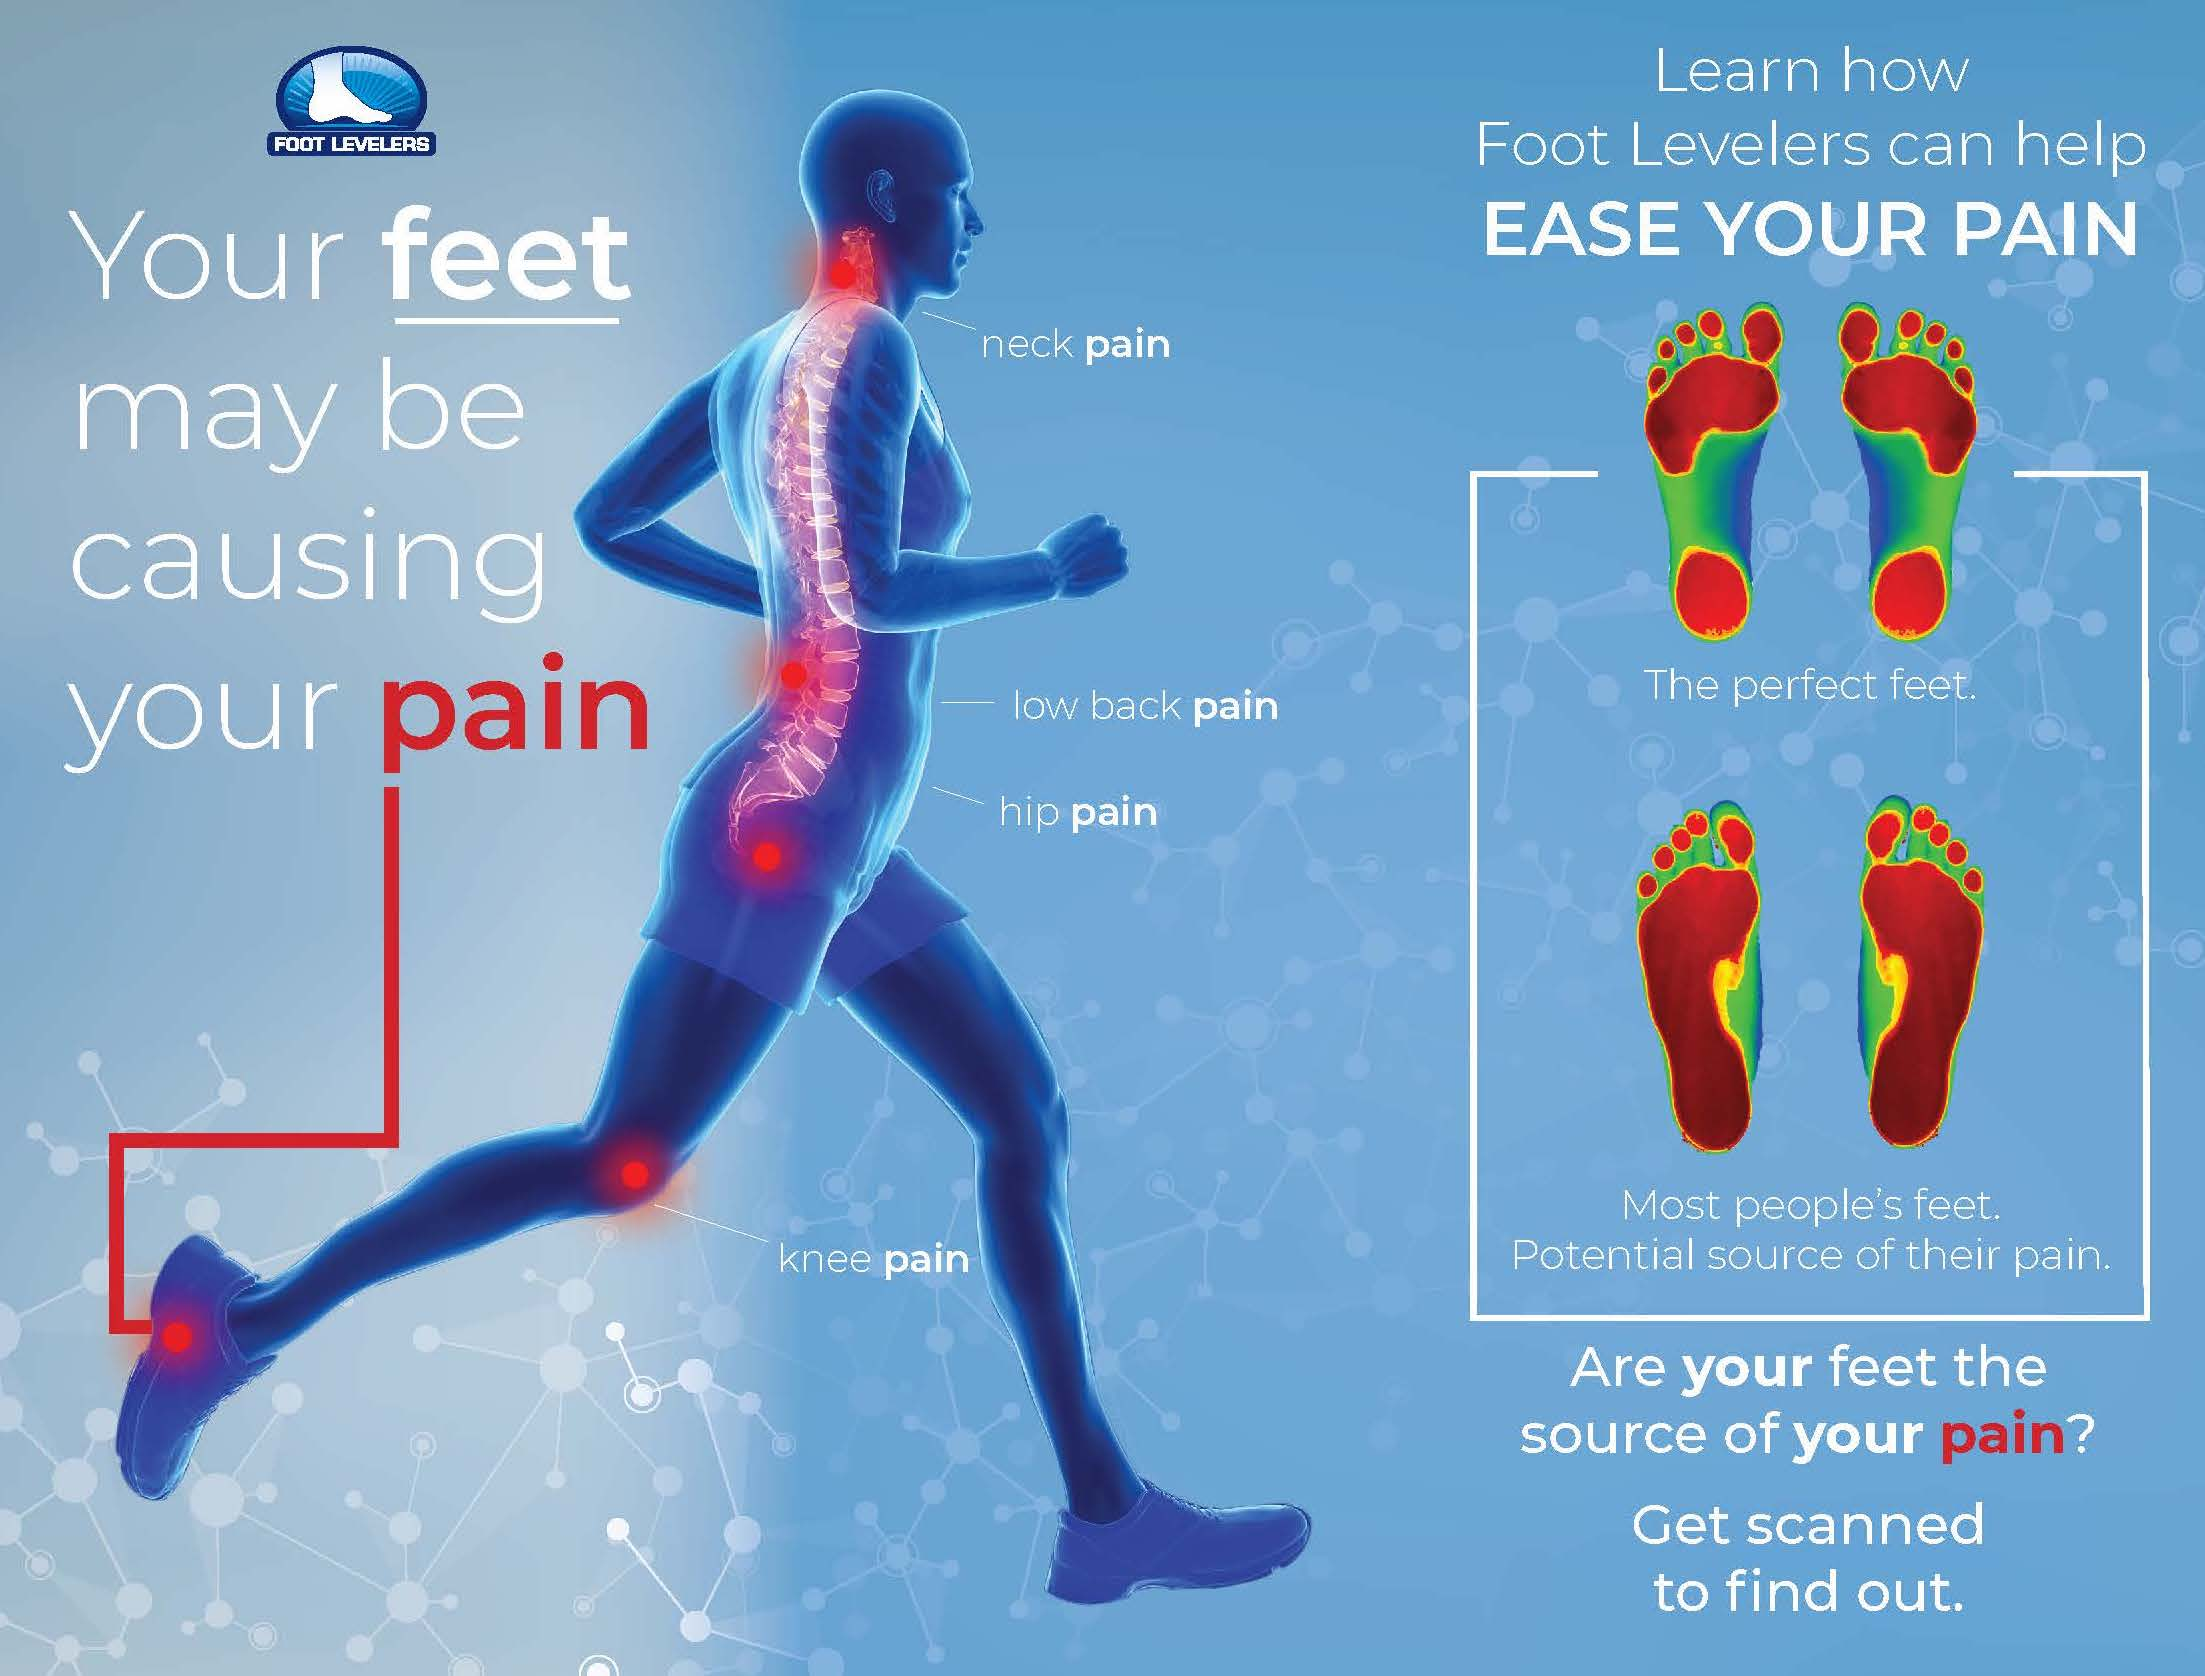 Your feet may be causing your pain - learn how Foot Levelers can help ease your pain - get scanned to find out.